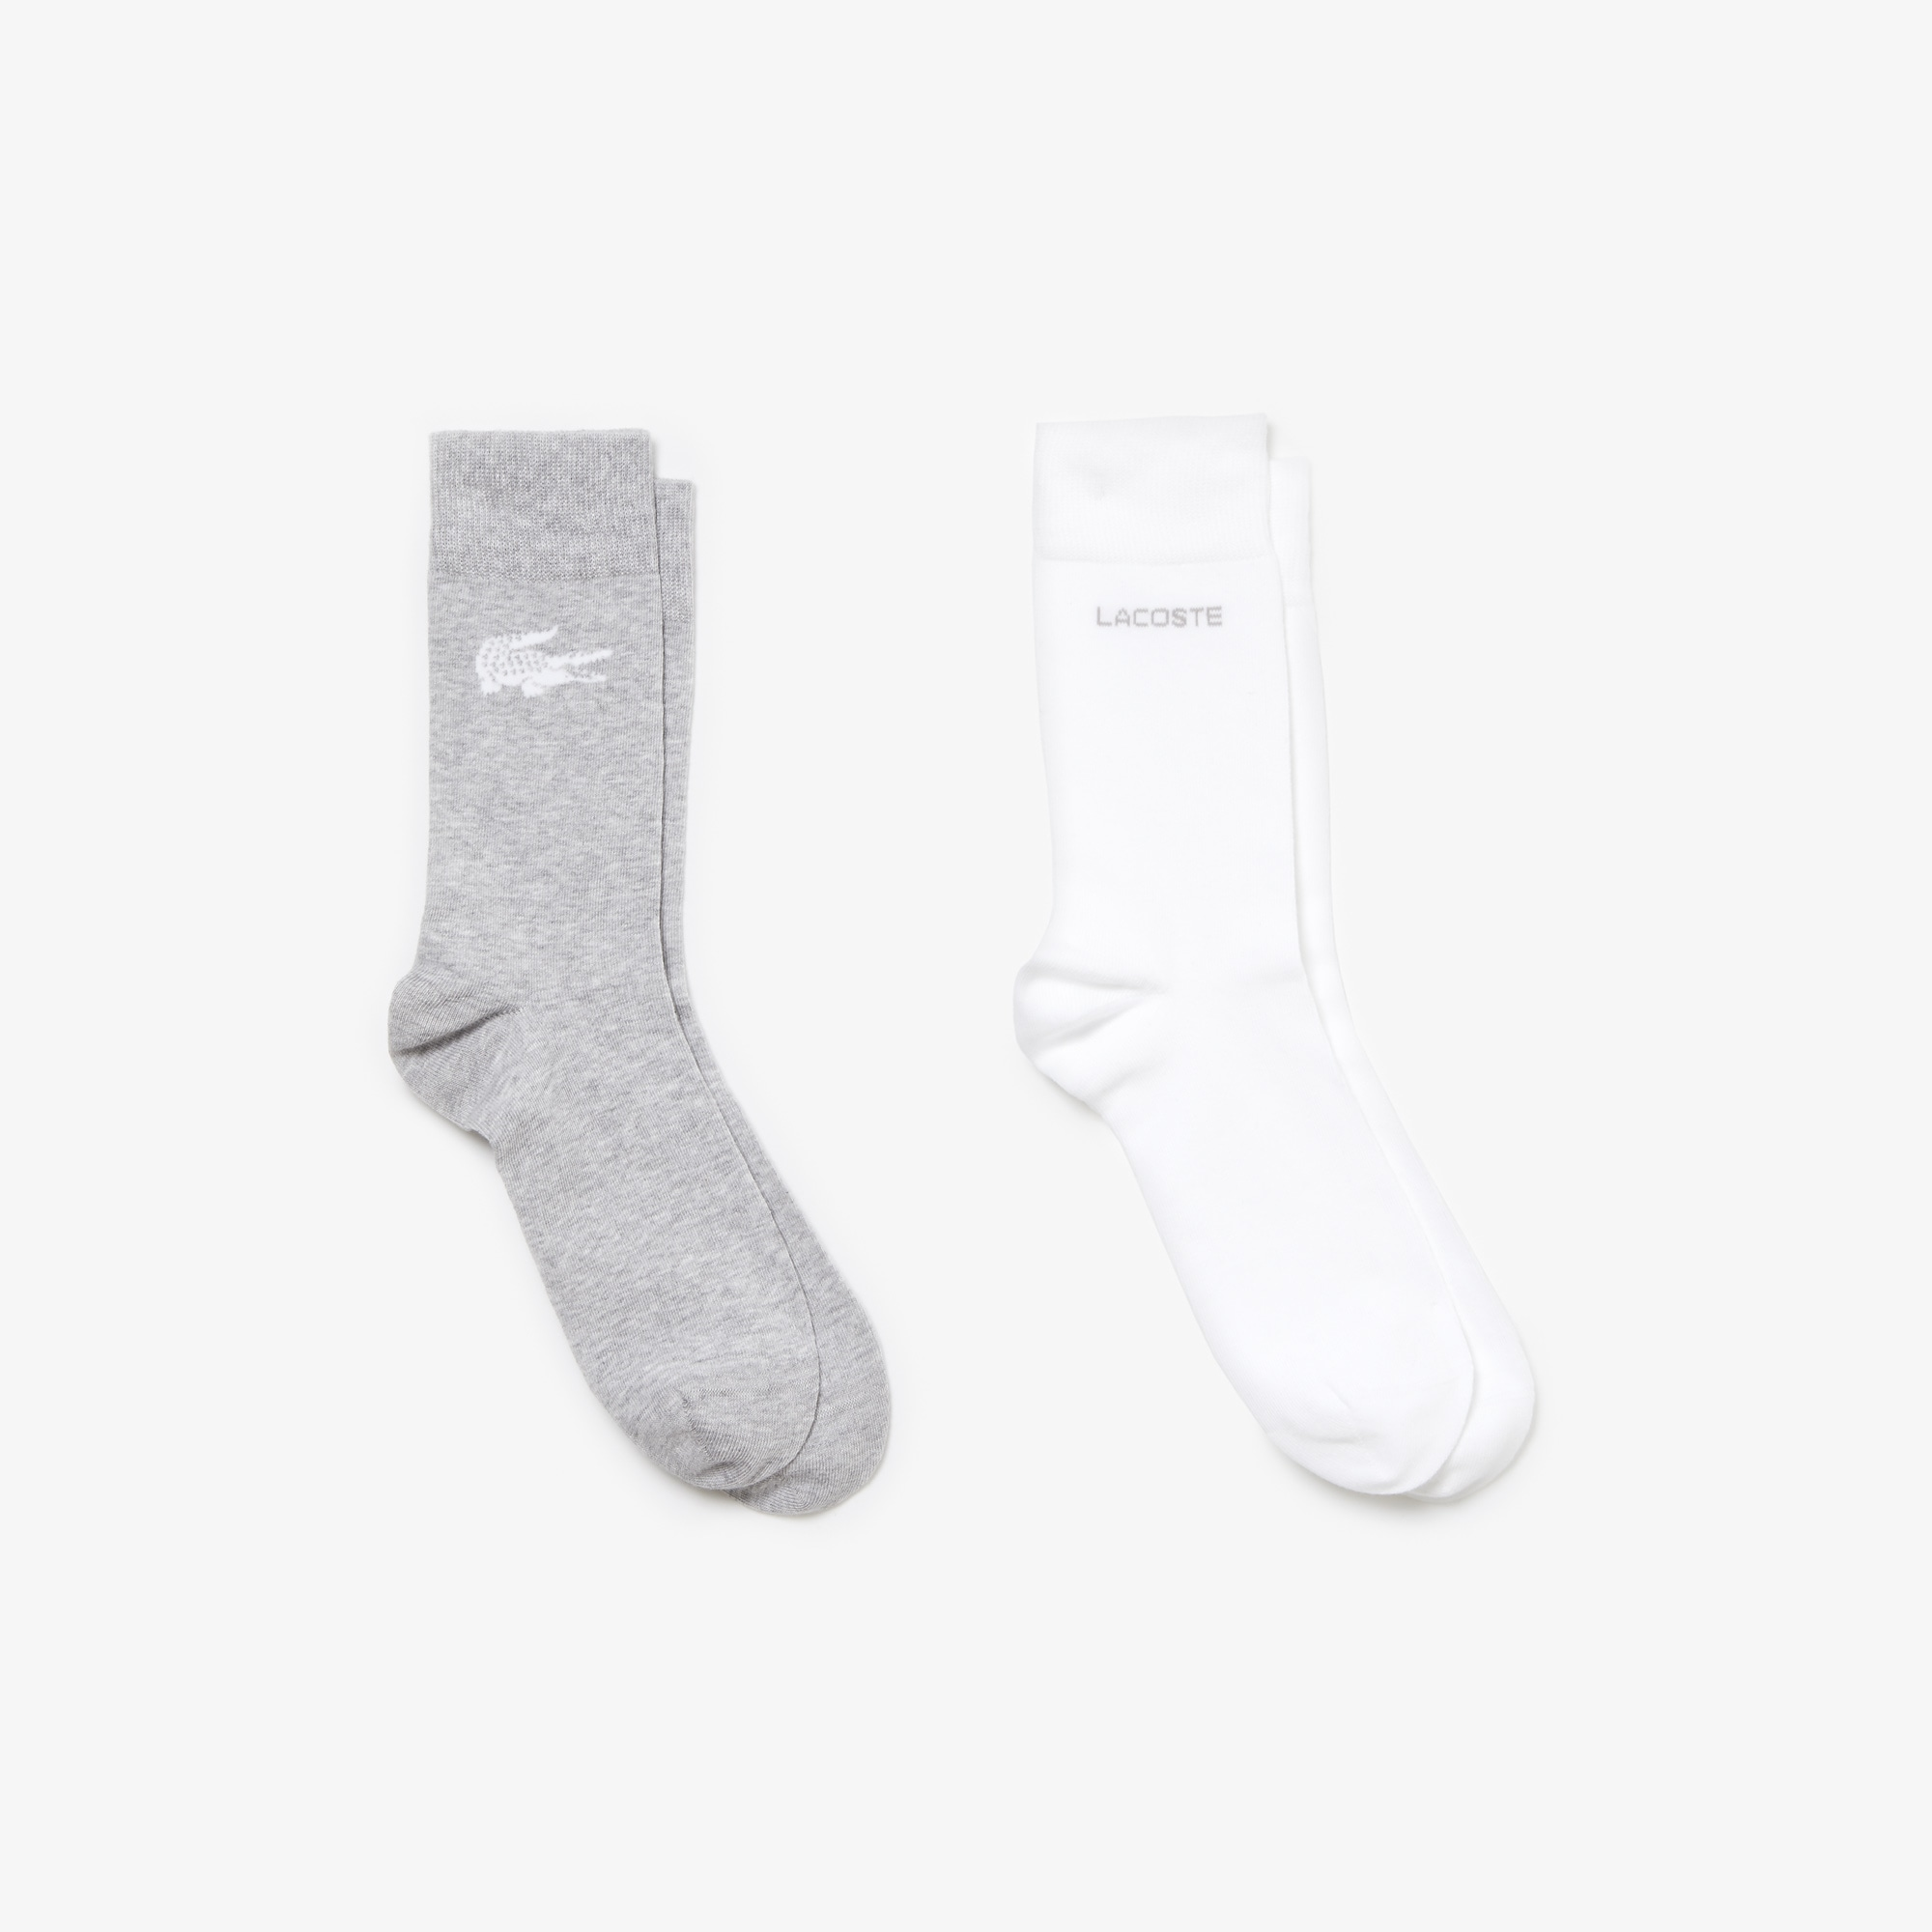 Two-pack of coordinated socks in print jersey